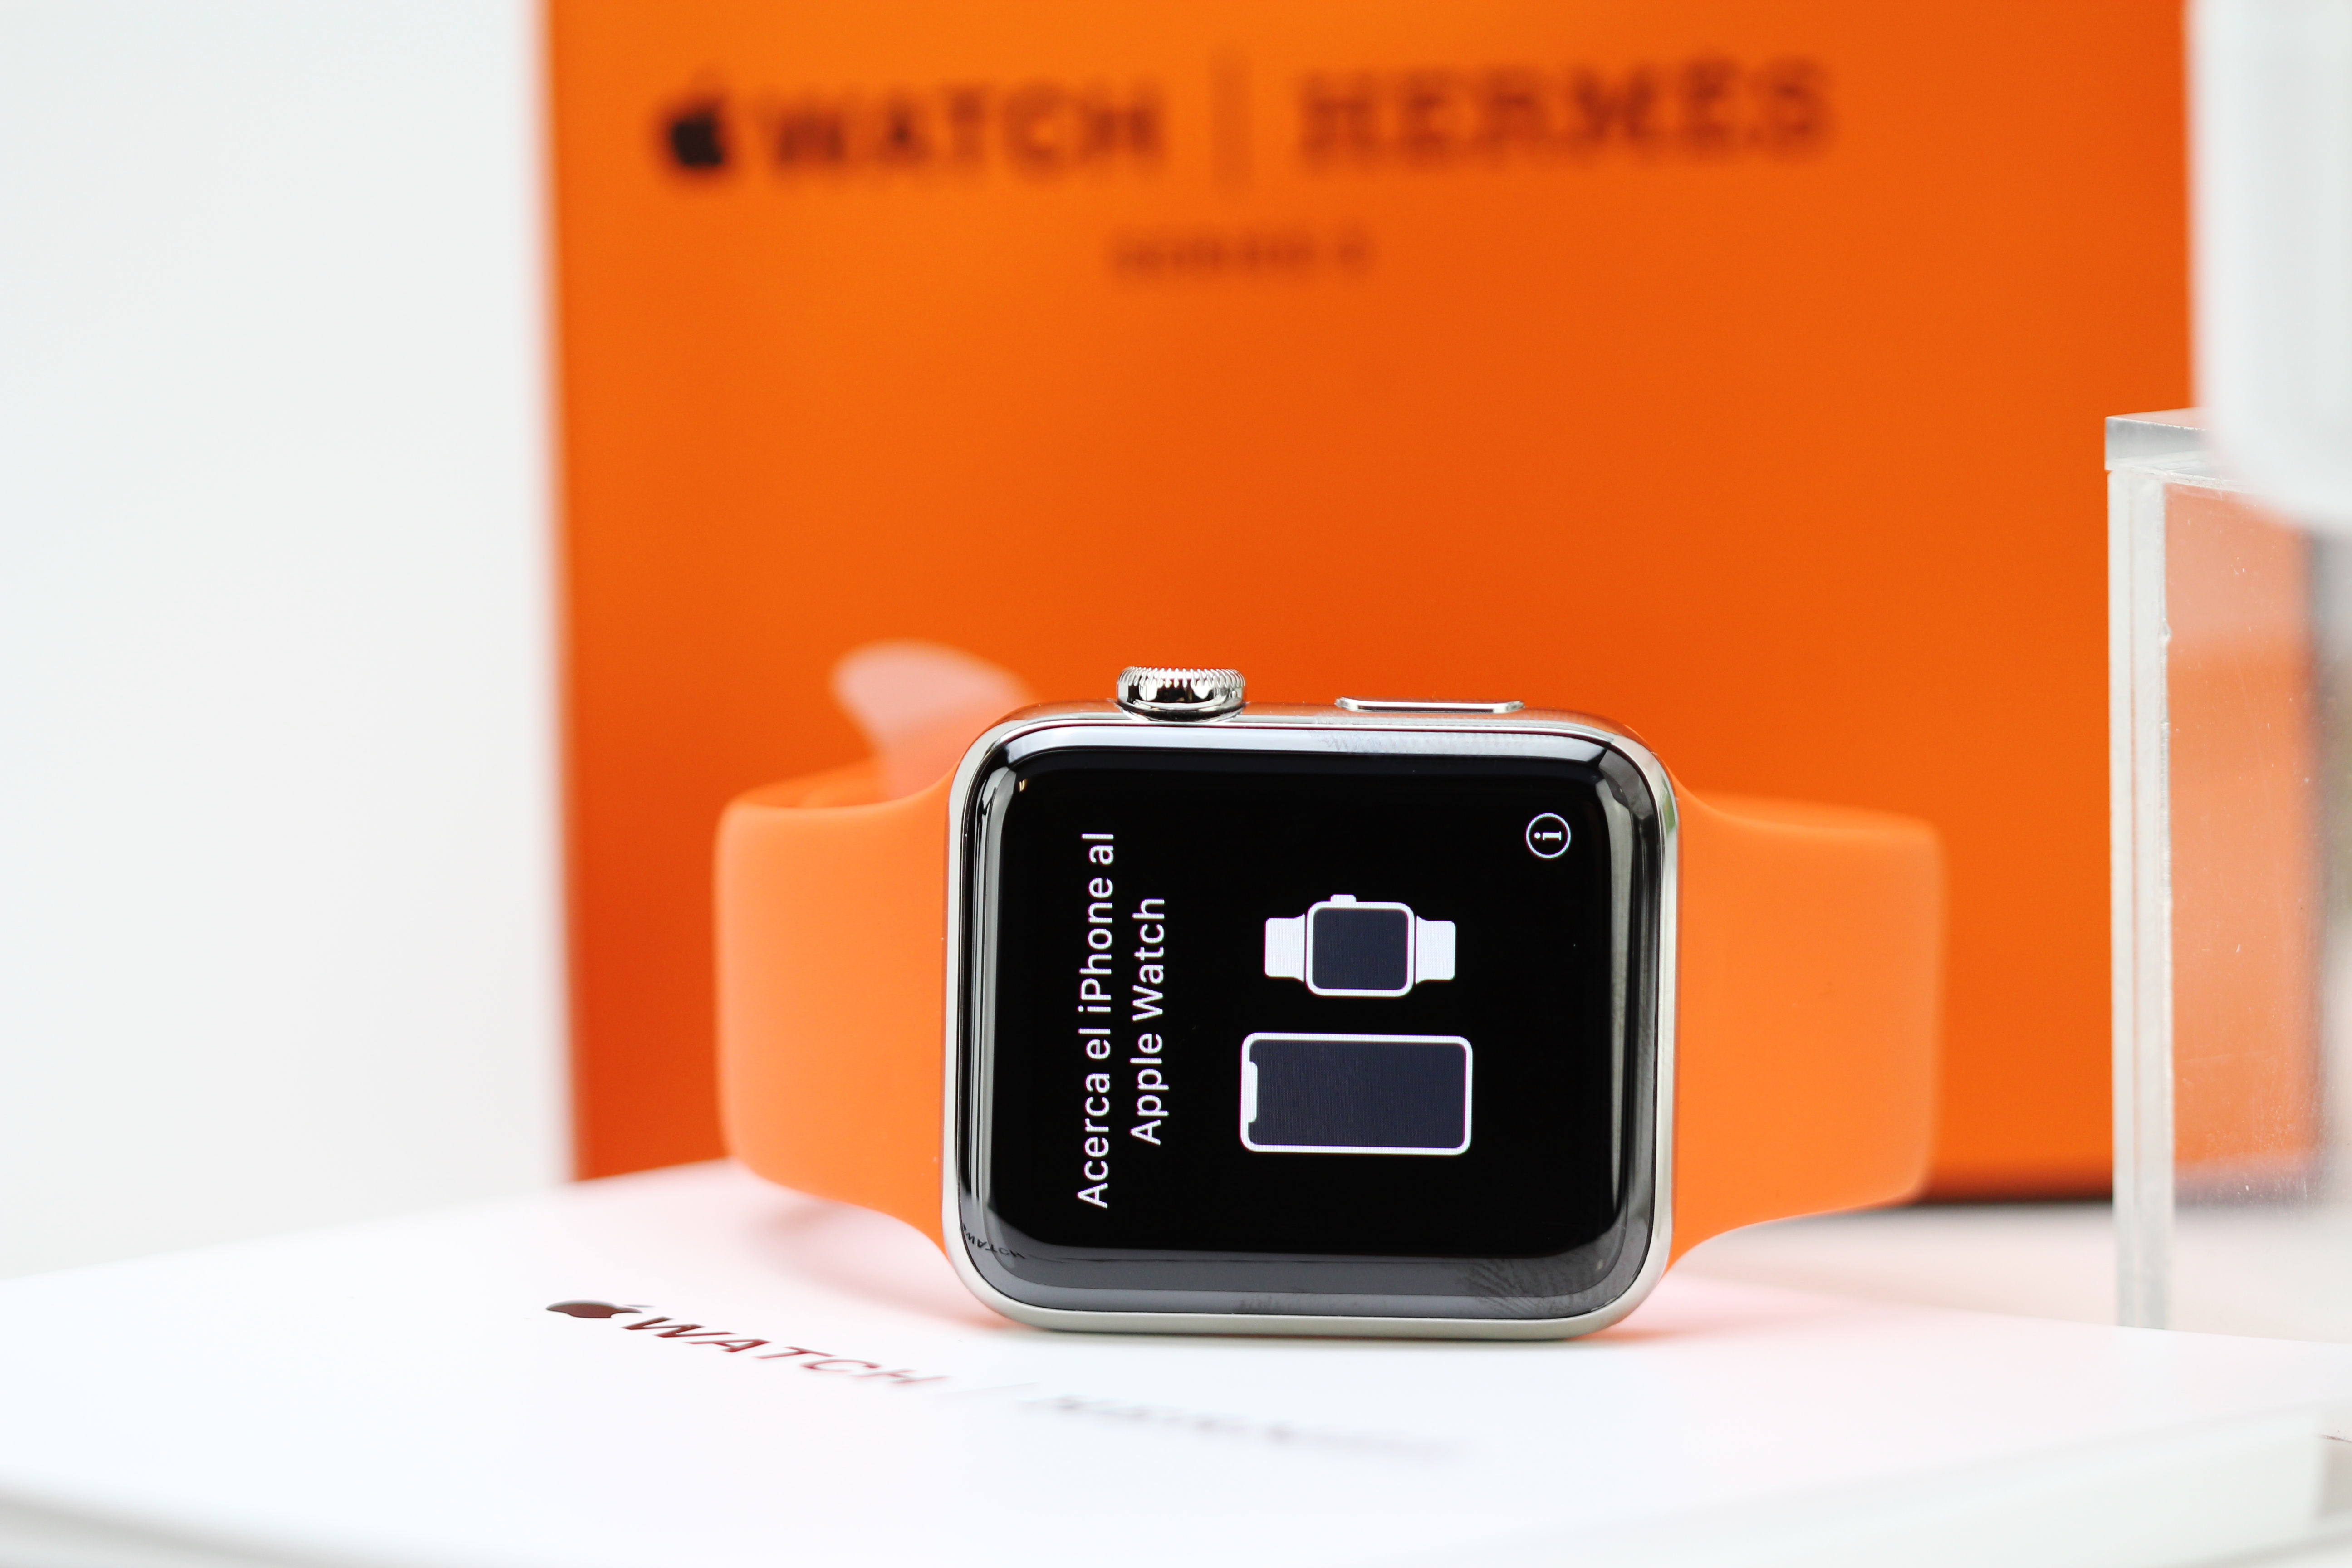 Lot 3 - Hermes Apple Watch- Series 3 Edition,